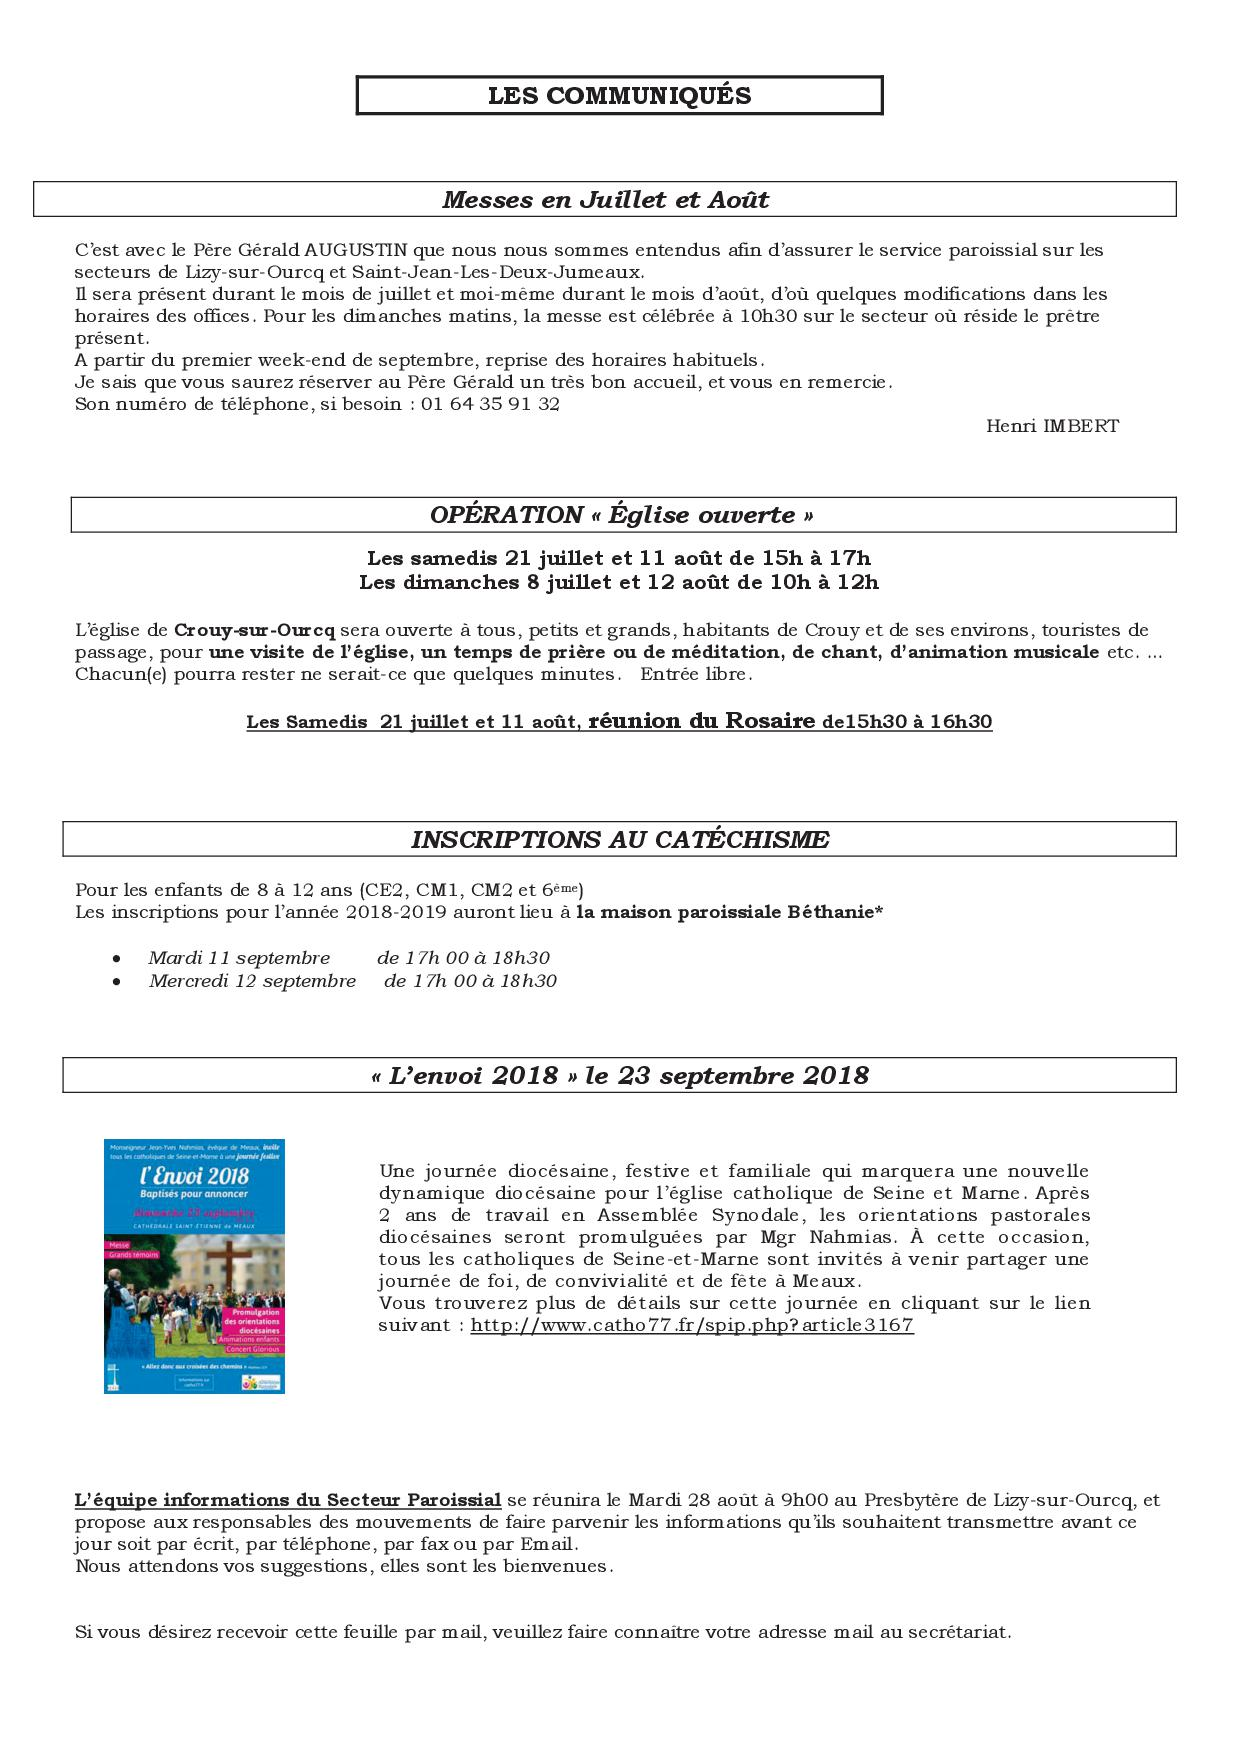 LsO feuille 8 juillet aout 2018-4